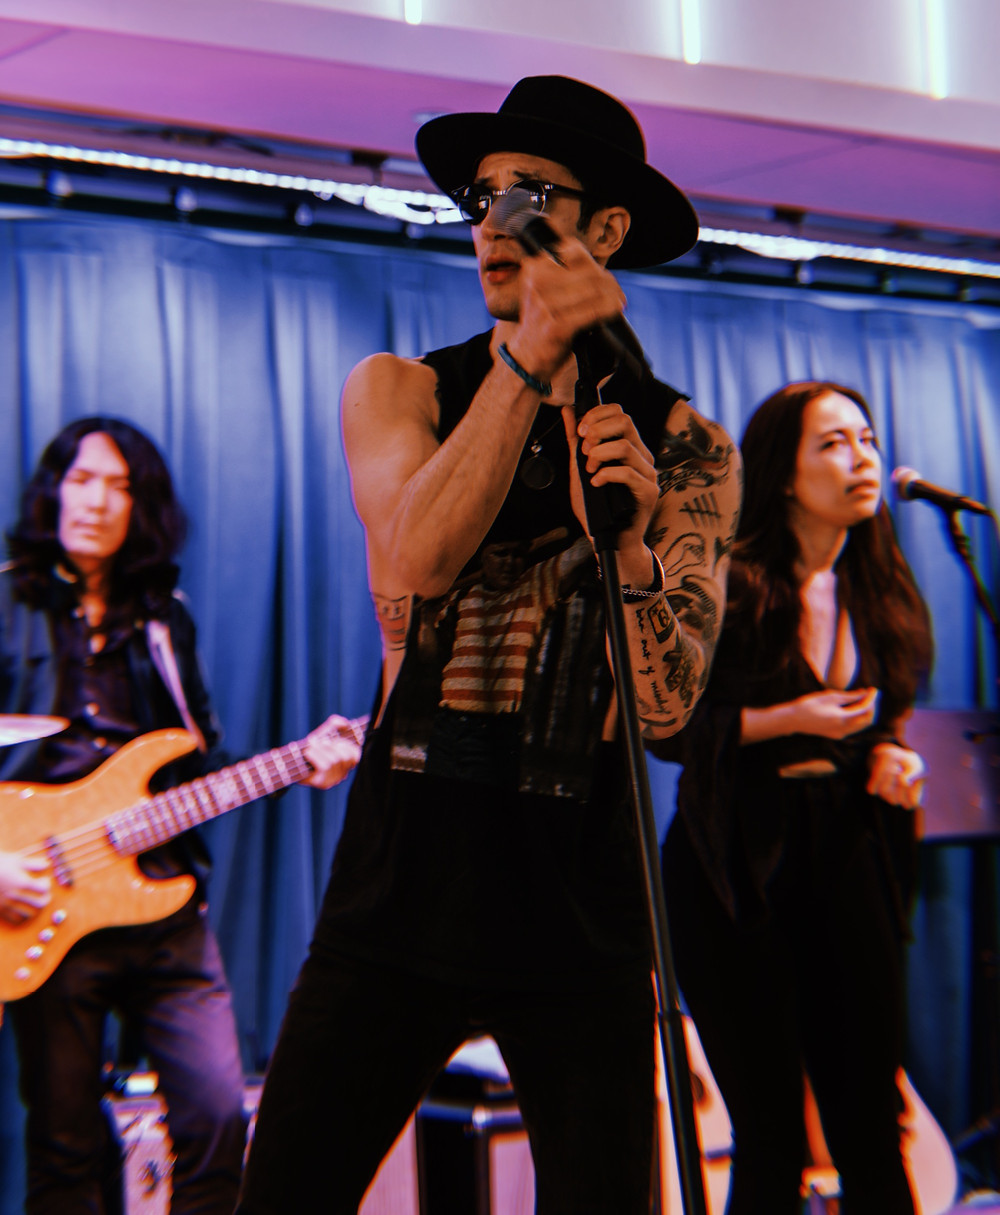 Katie Lee Hill sings with Andy Suzuki & The Method at Pandora Media